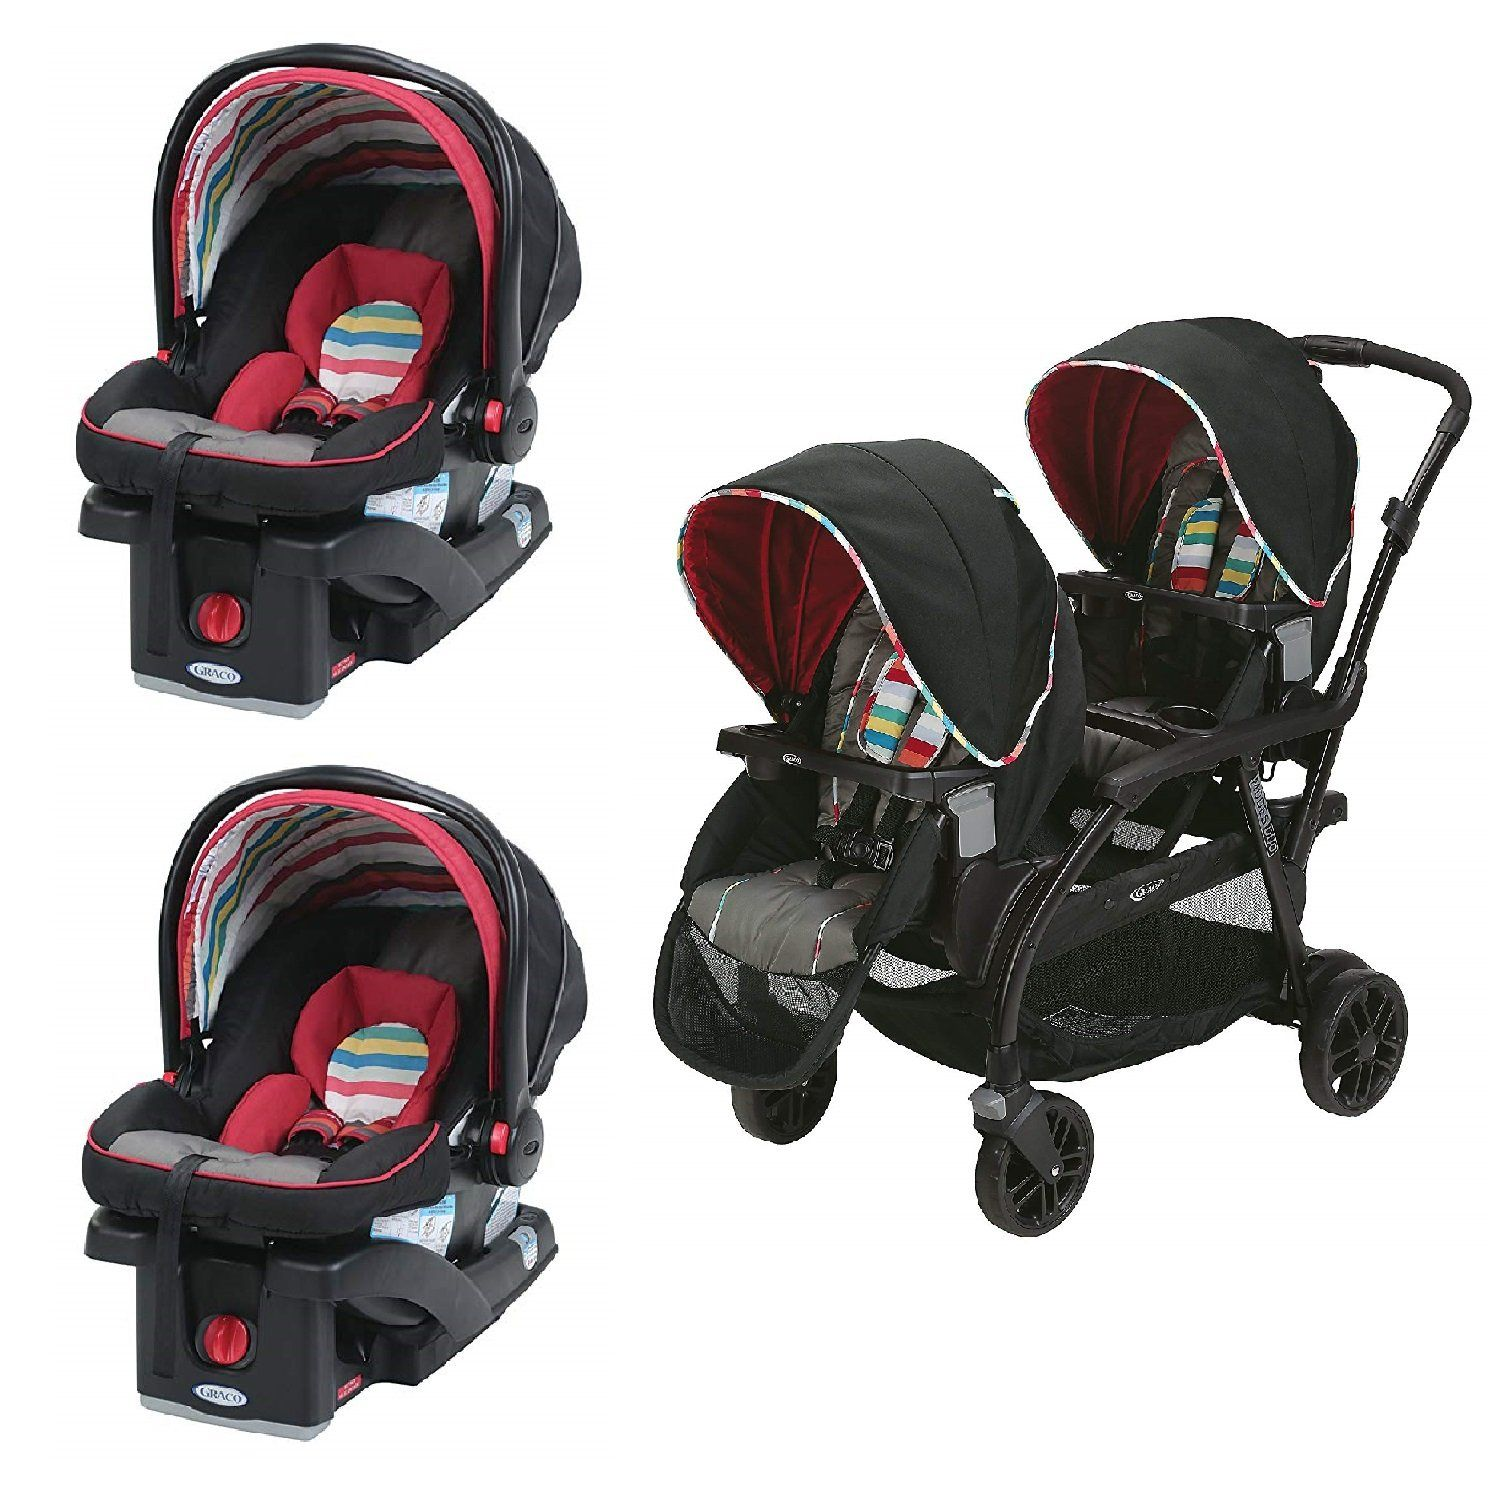 Graco Modes Duo Stroller For Twins Graco Red Double Seated Twin Stroller With 2 Car Seats